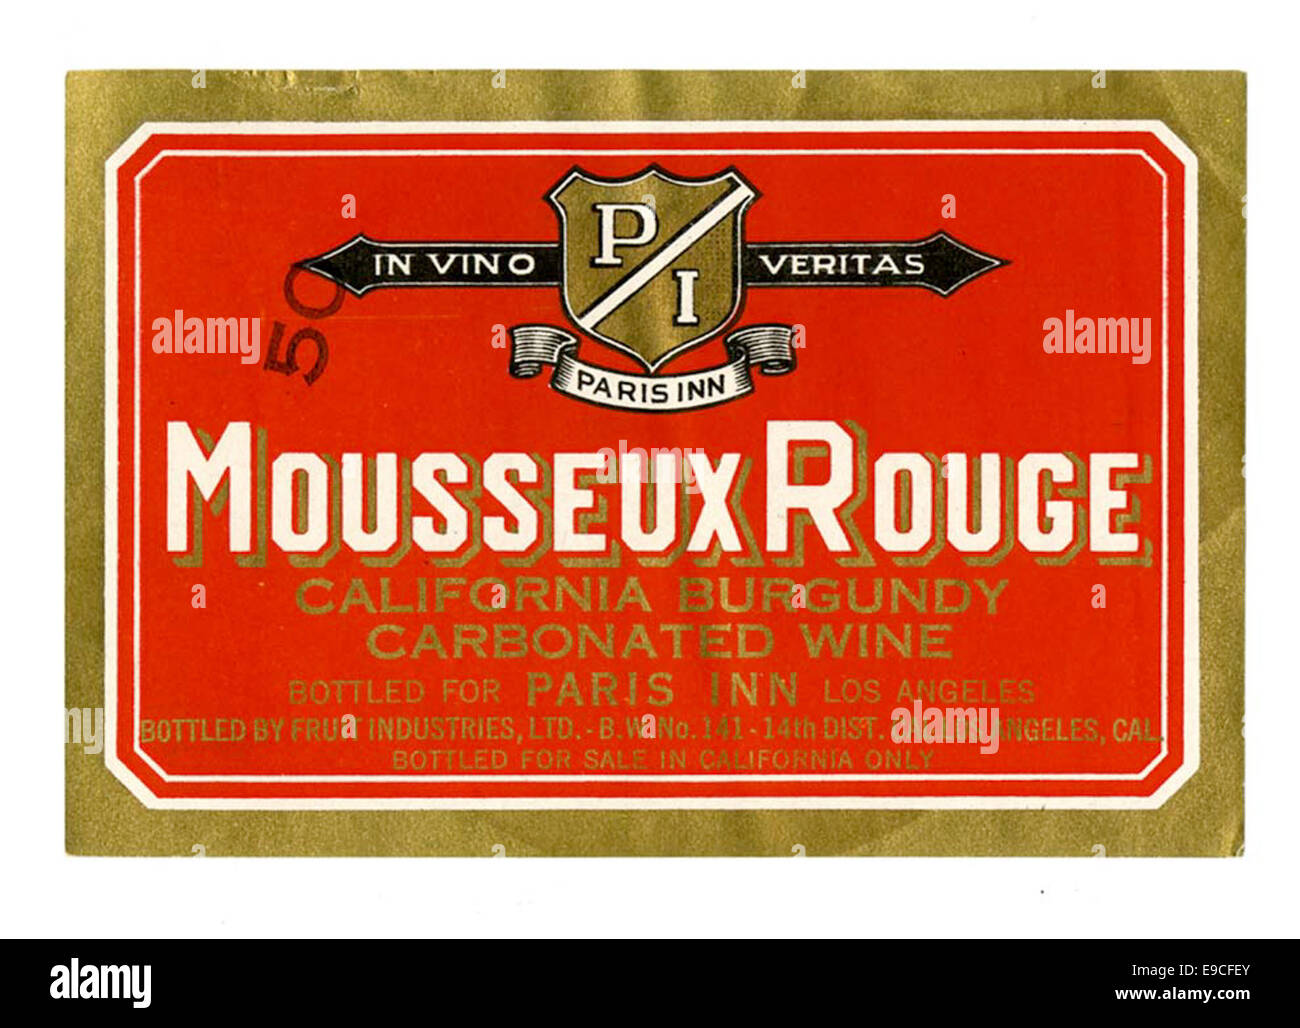 Wine label, Fruit Industries, Ltd., Mousseux Rouge California Burgundy - Stock Image